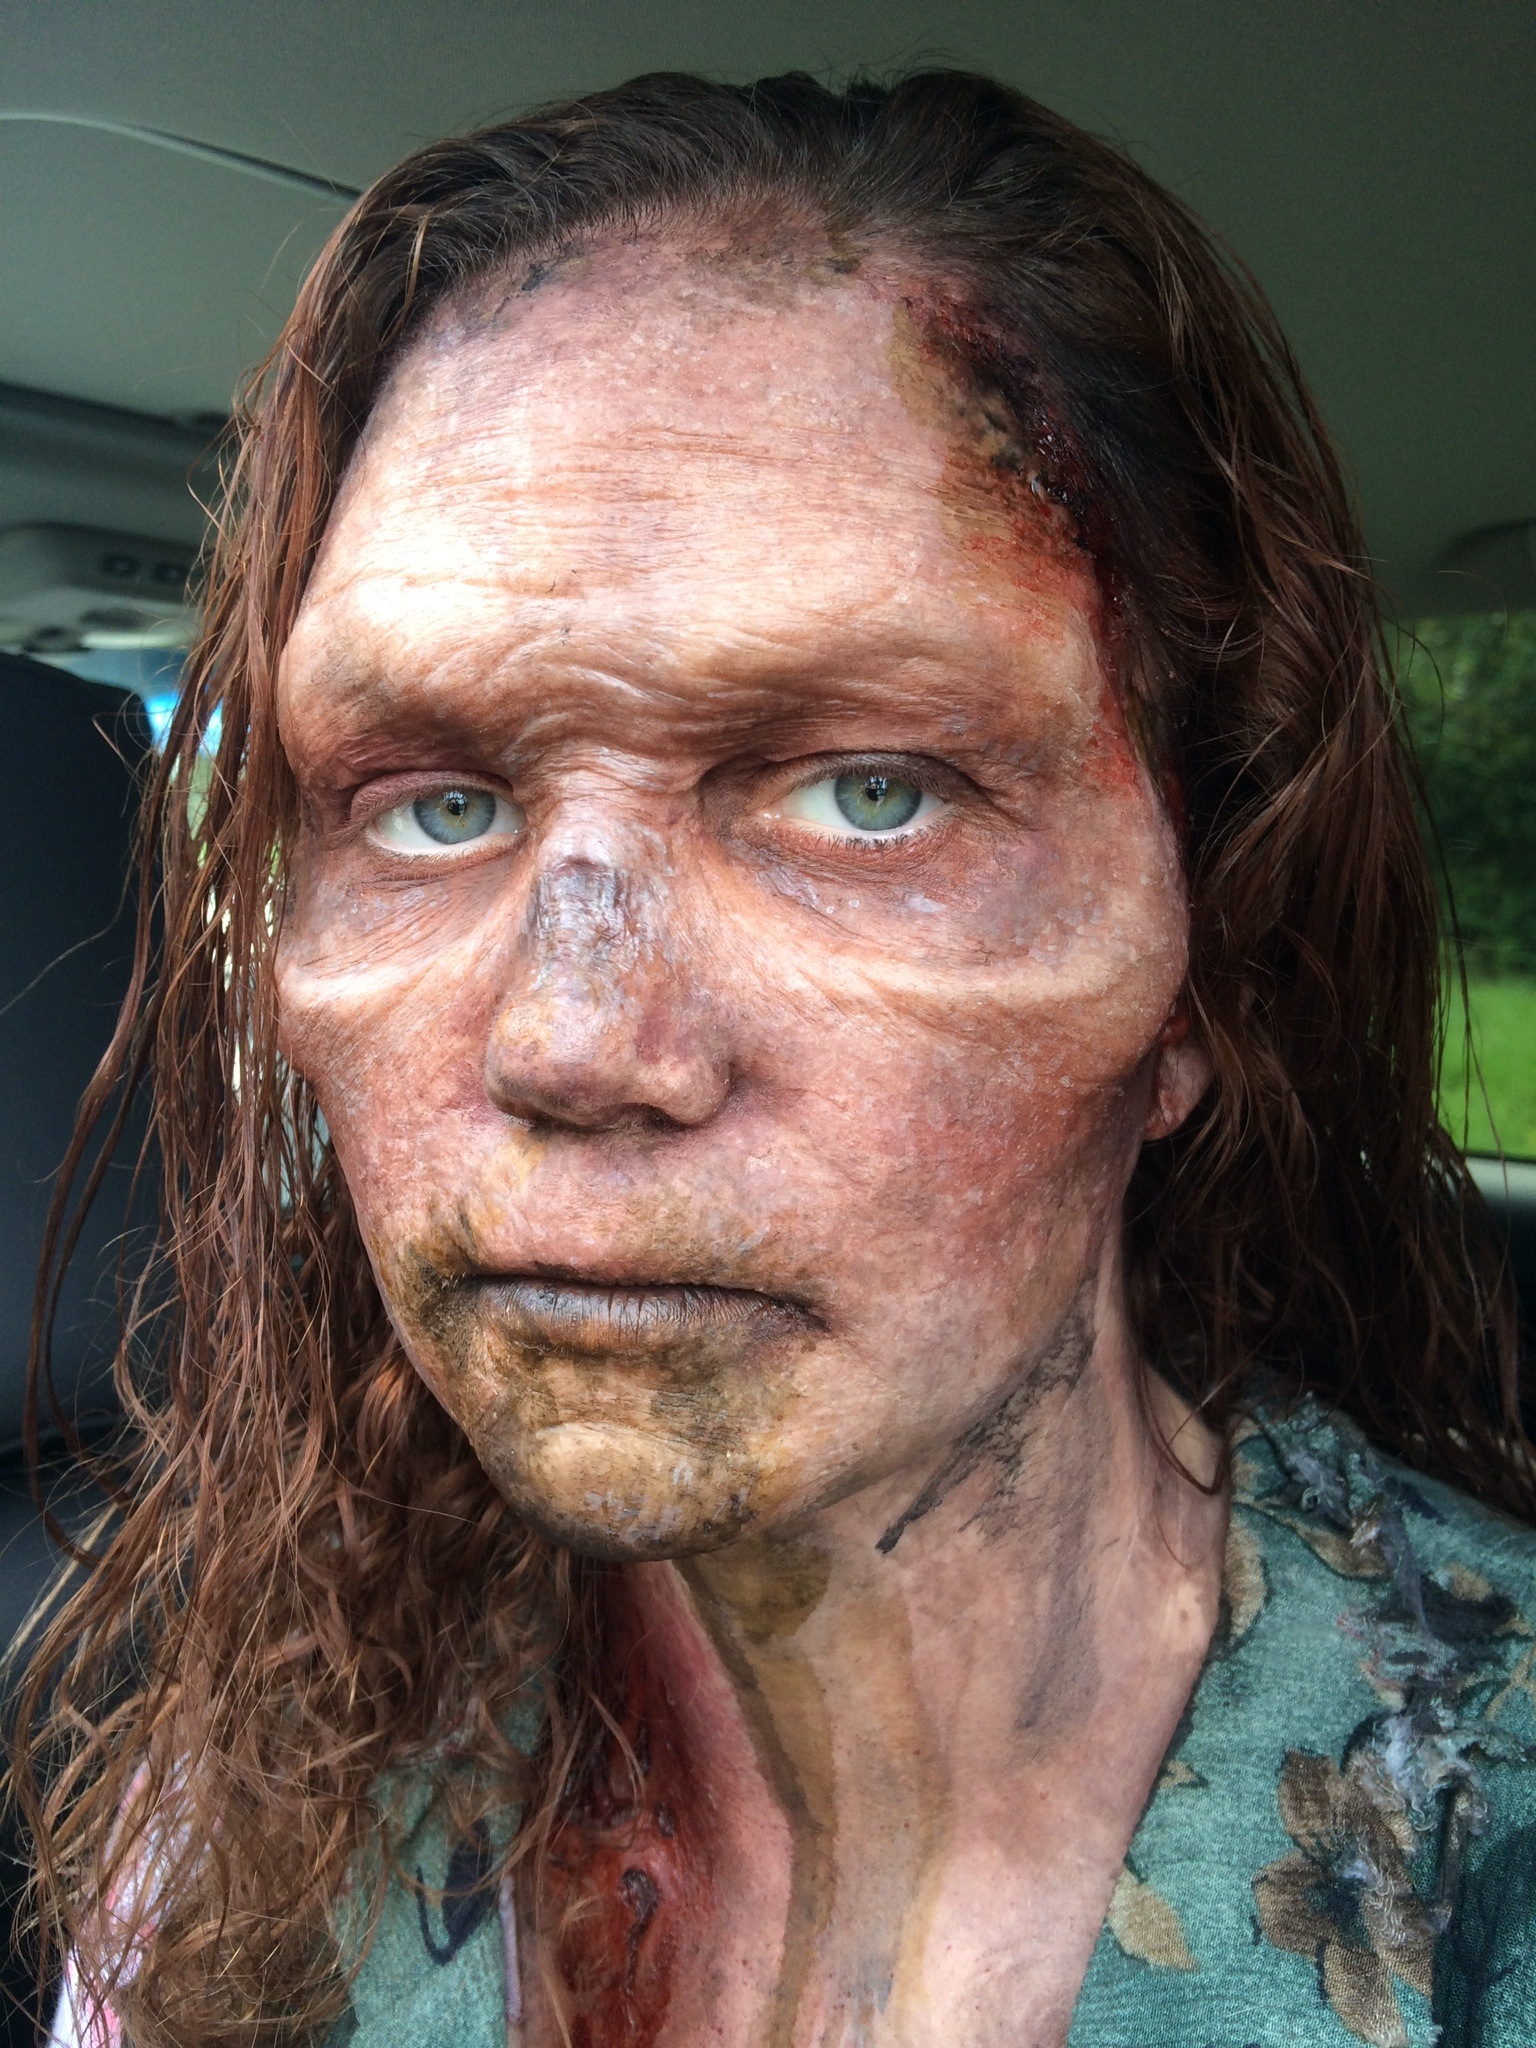 Prosthetics Provided by Blue Whale Studios.